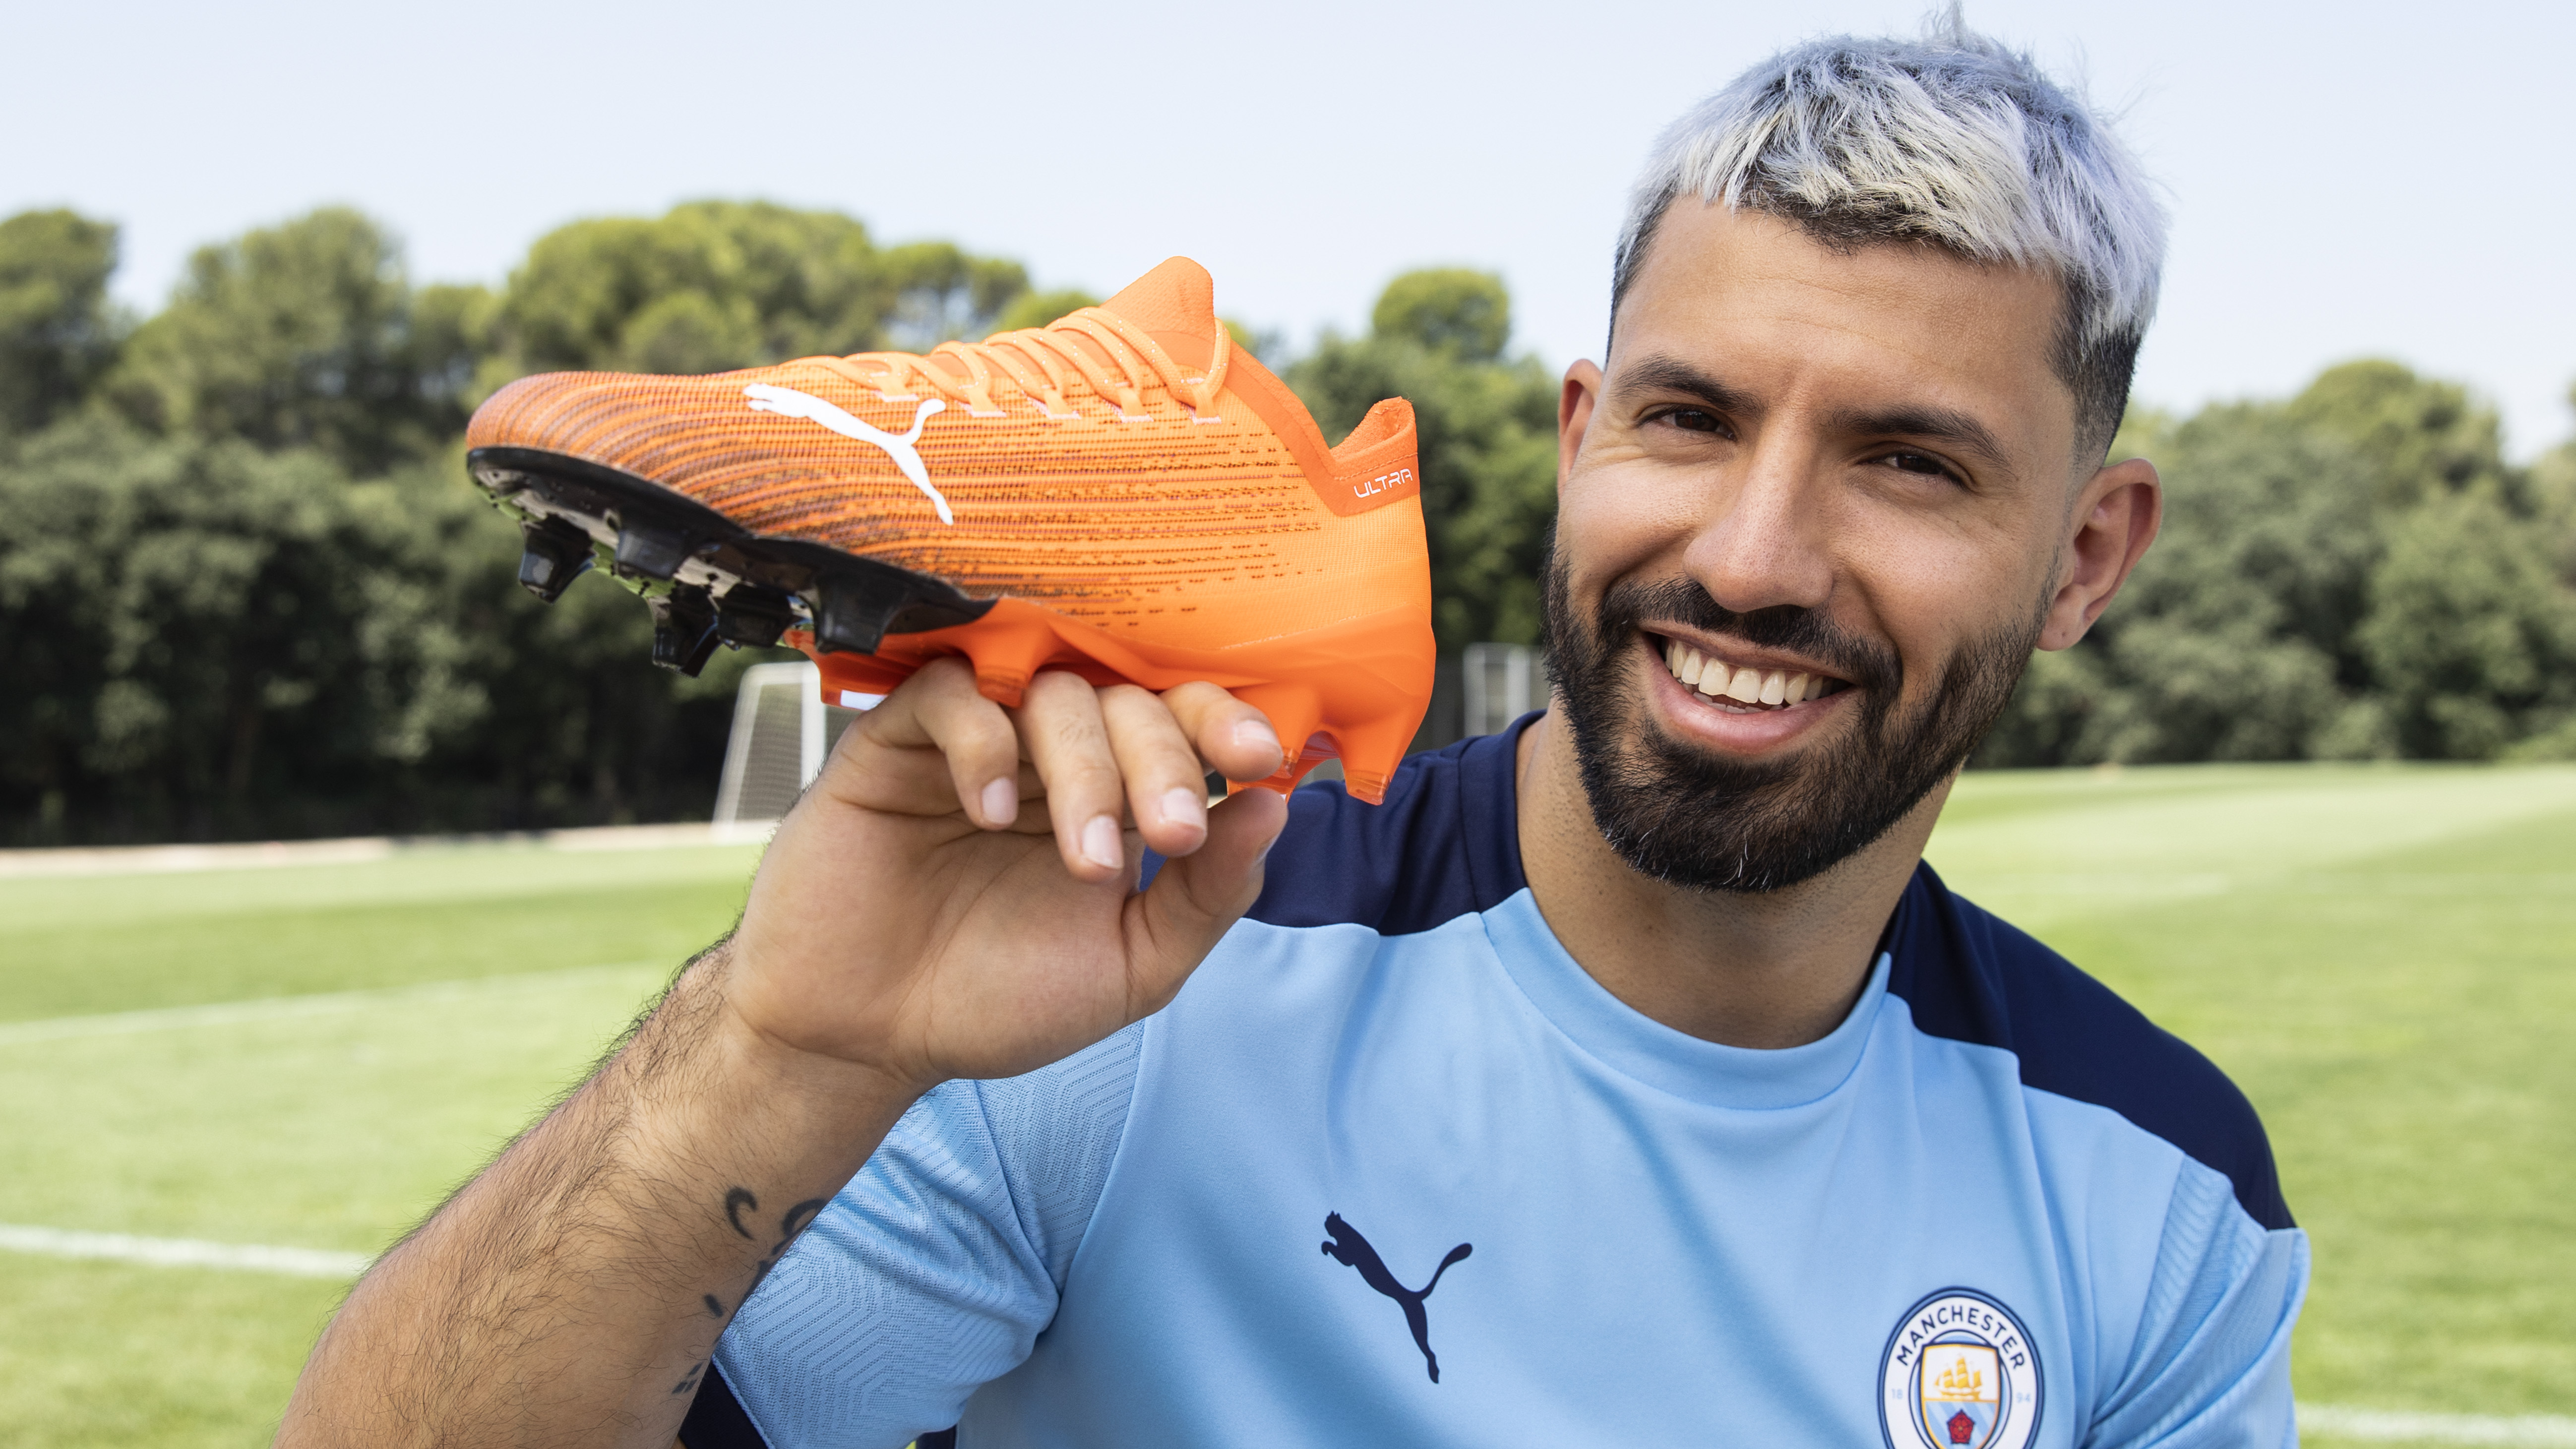 Built for Speed - Antoine Griezmann and Sergio Aguero's stunning new Puma football boot!